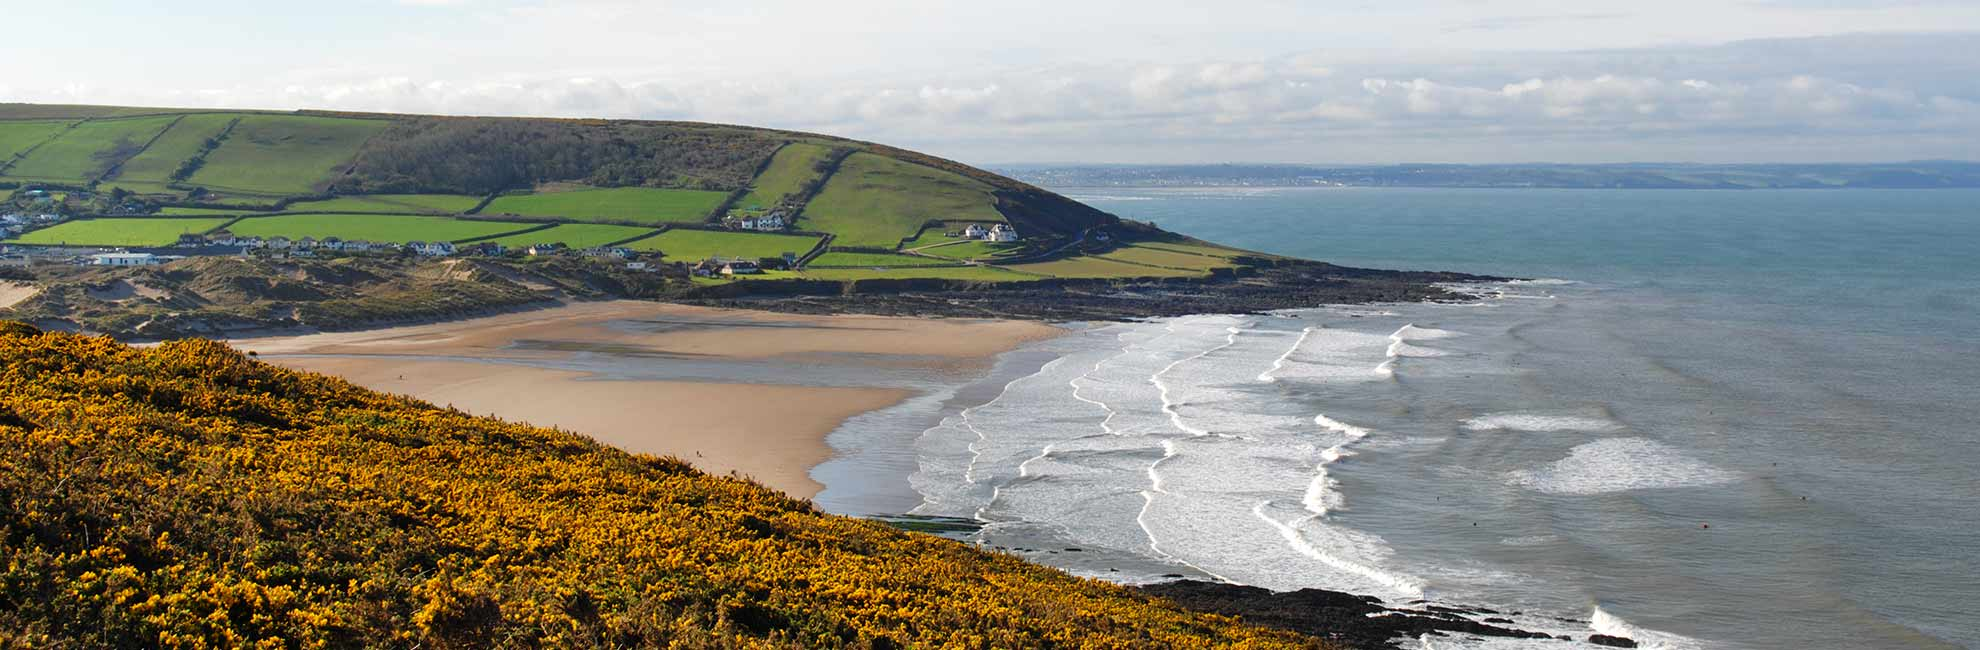 Touring & Camping Pitches | Ruda Holiday Park, Croyde